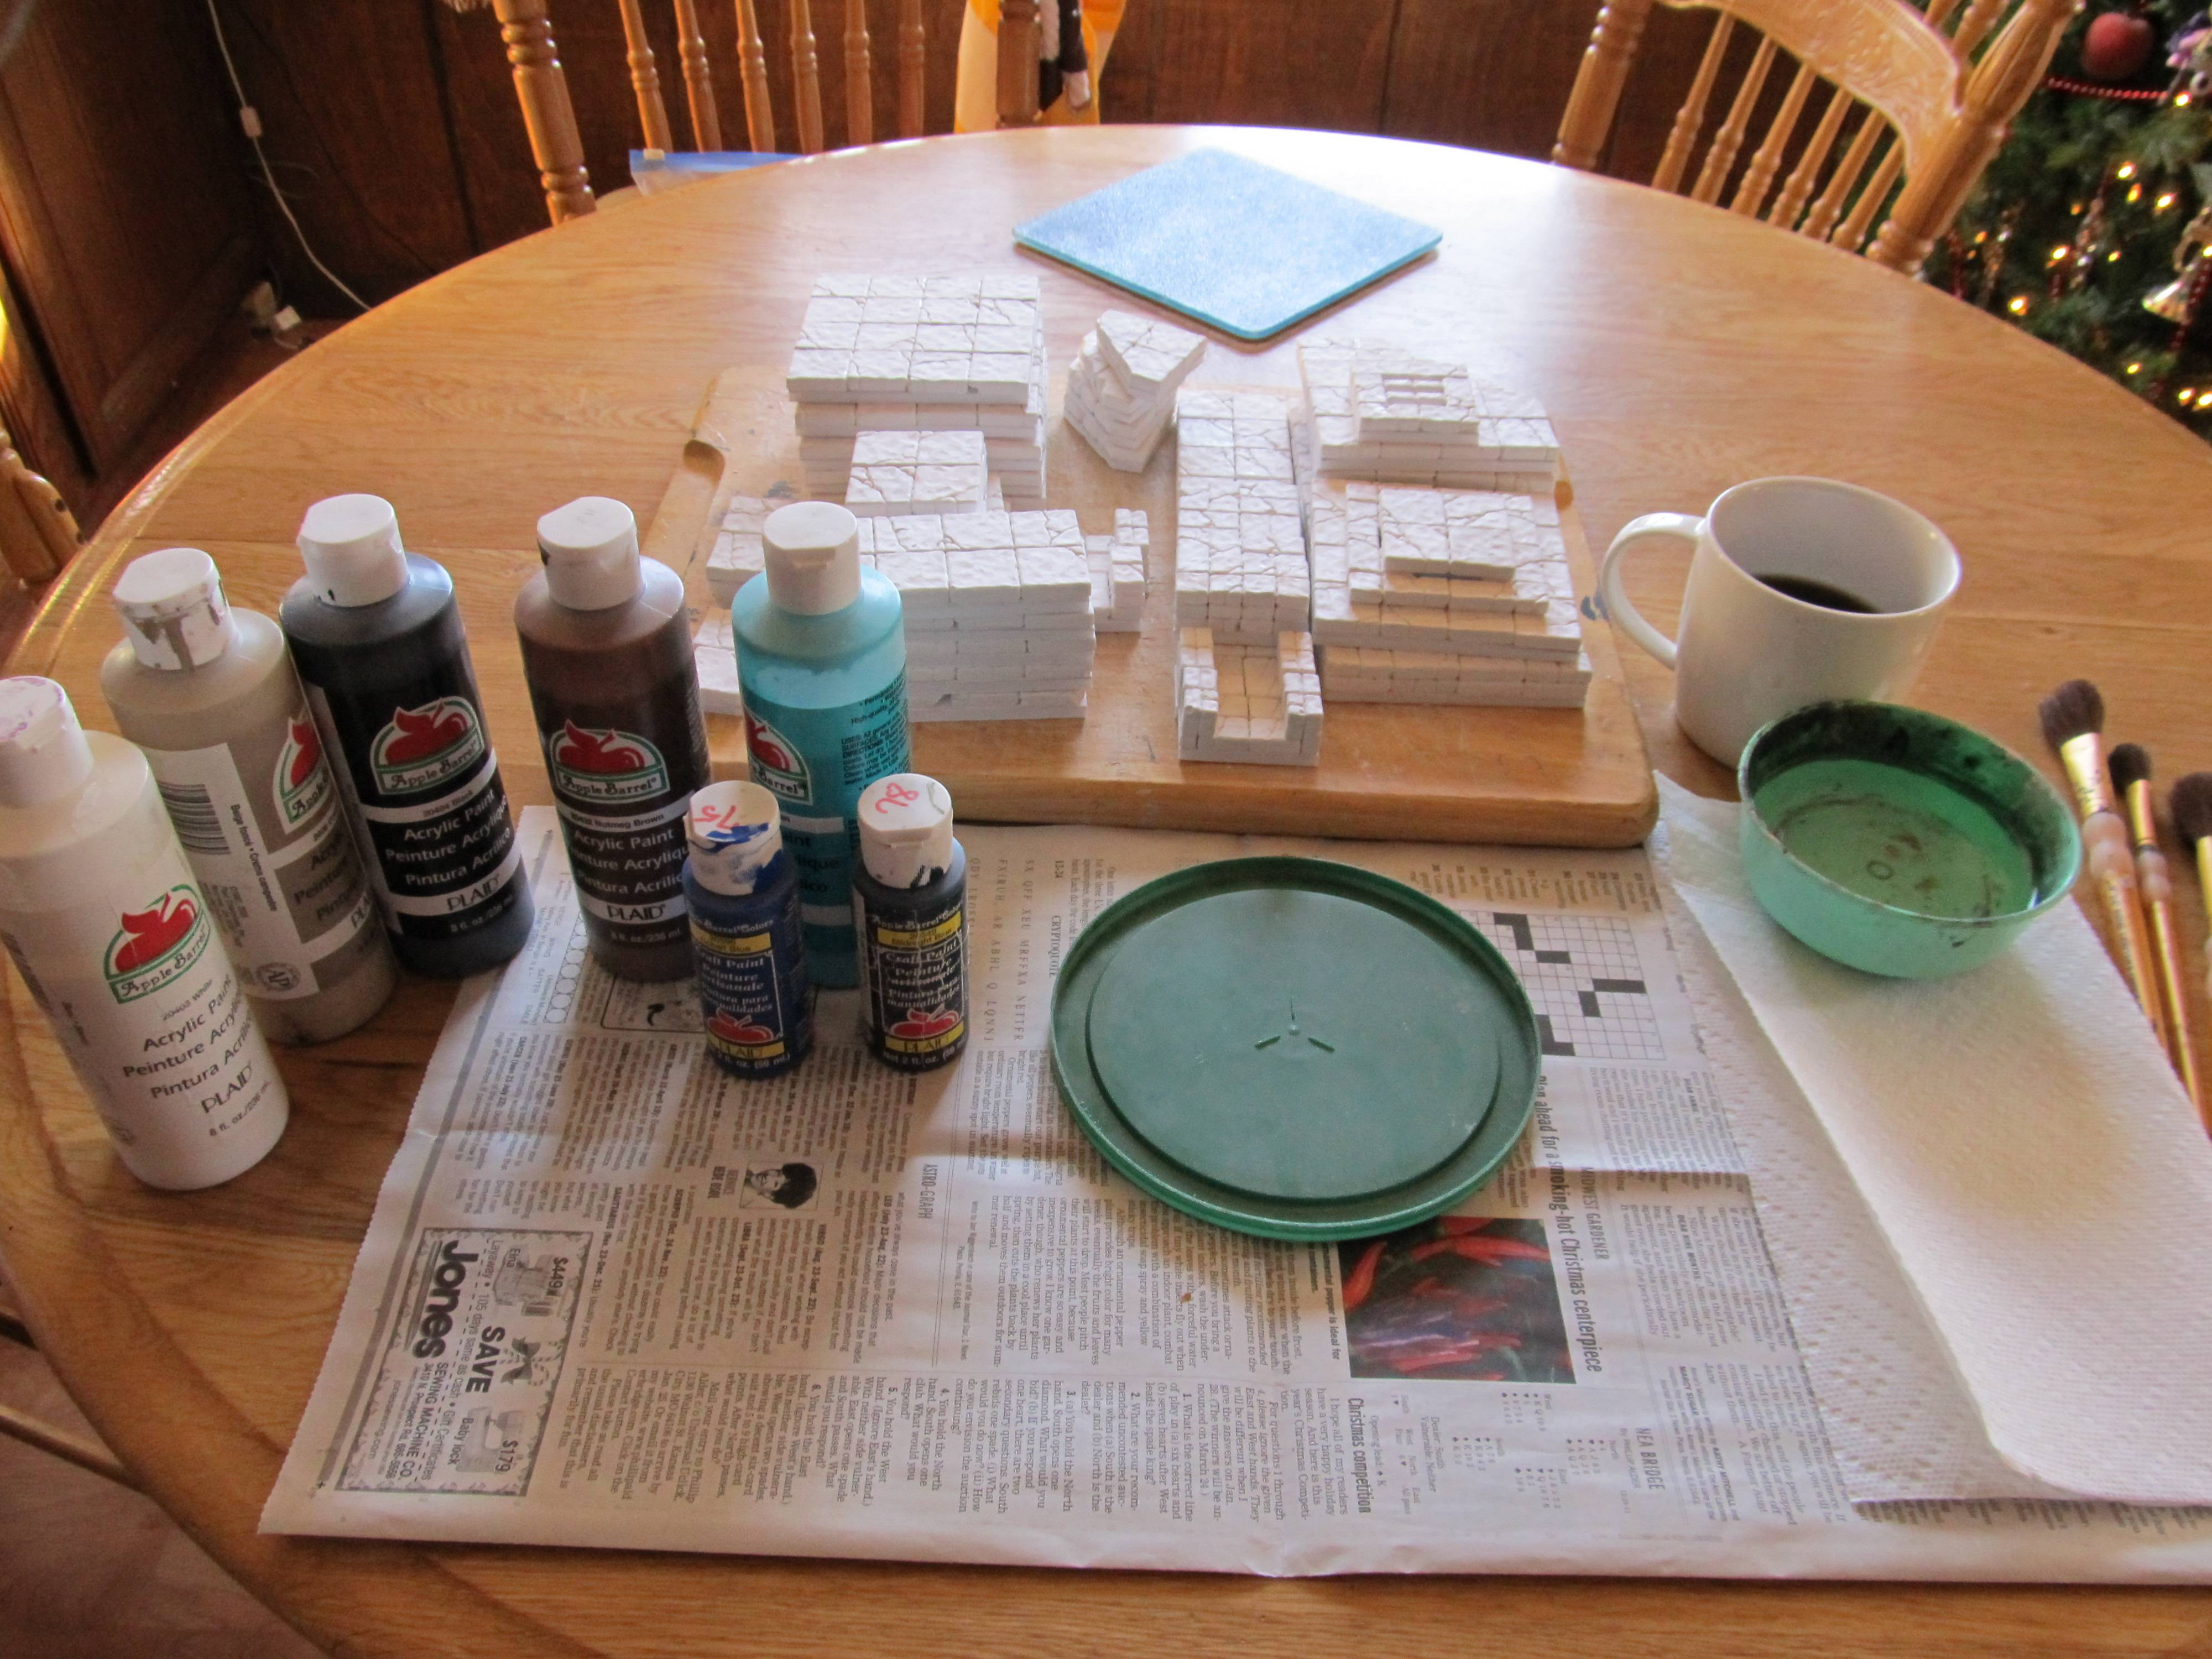 Gather your painting supplies before you begin. Acrylic paints, brushes, a water dish and a pallet for mixing the paint. You'll be using a lot of paper towels, too.